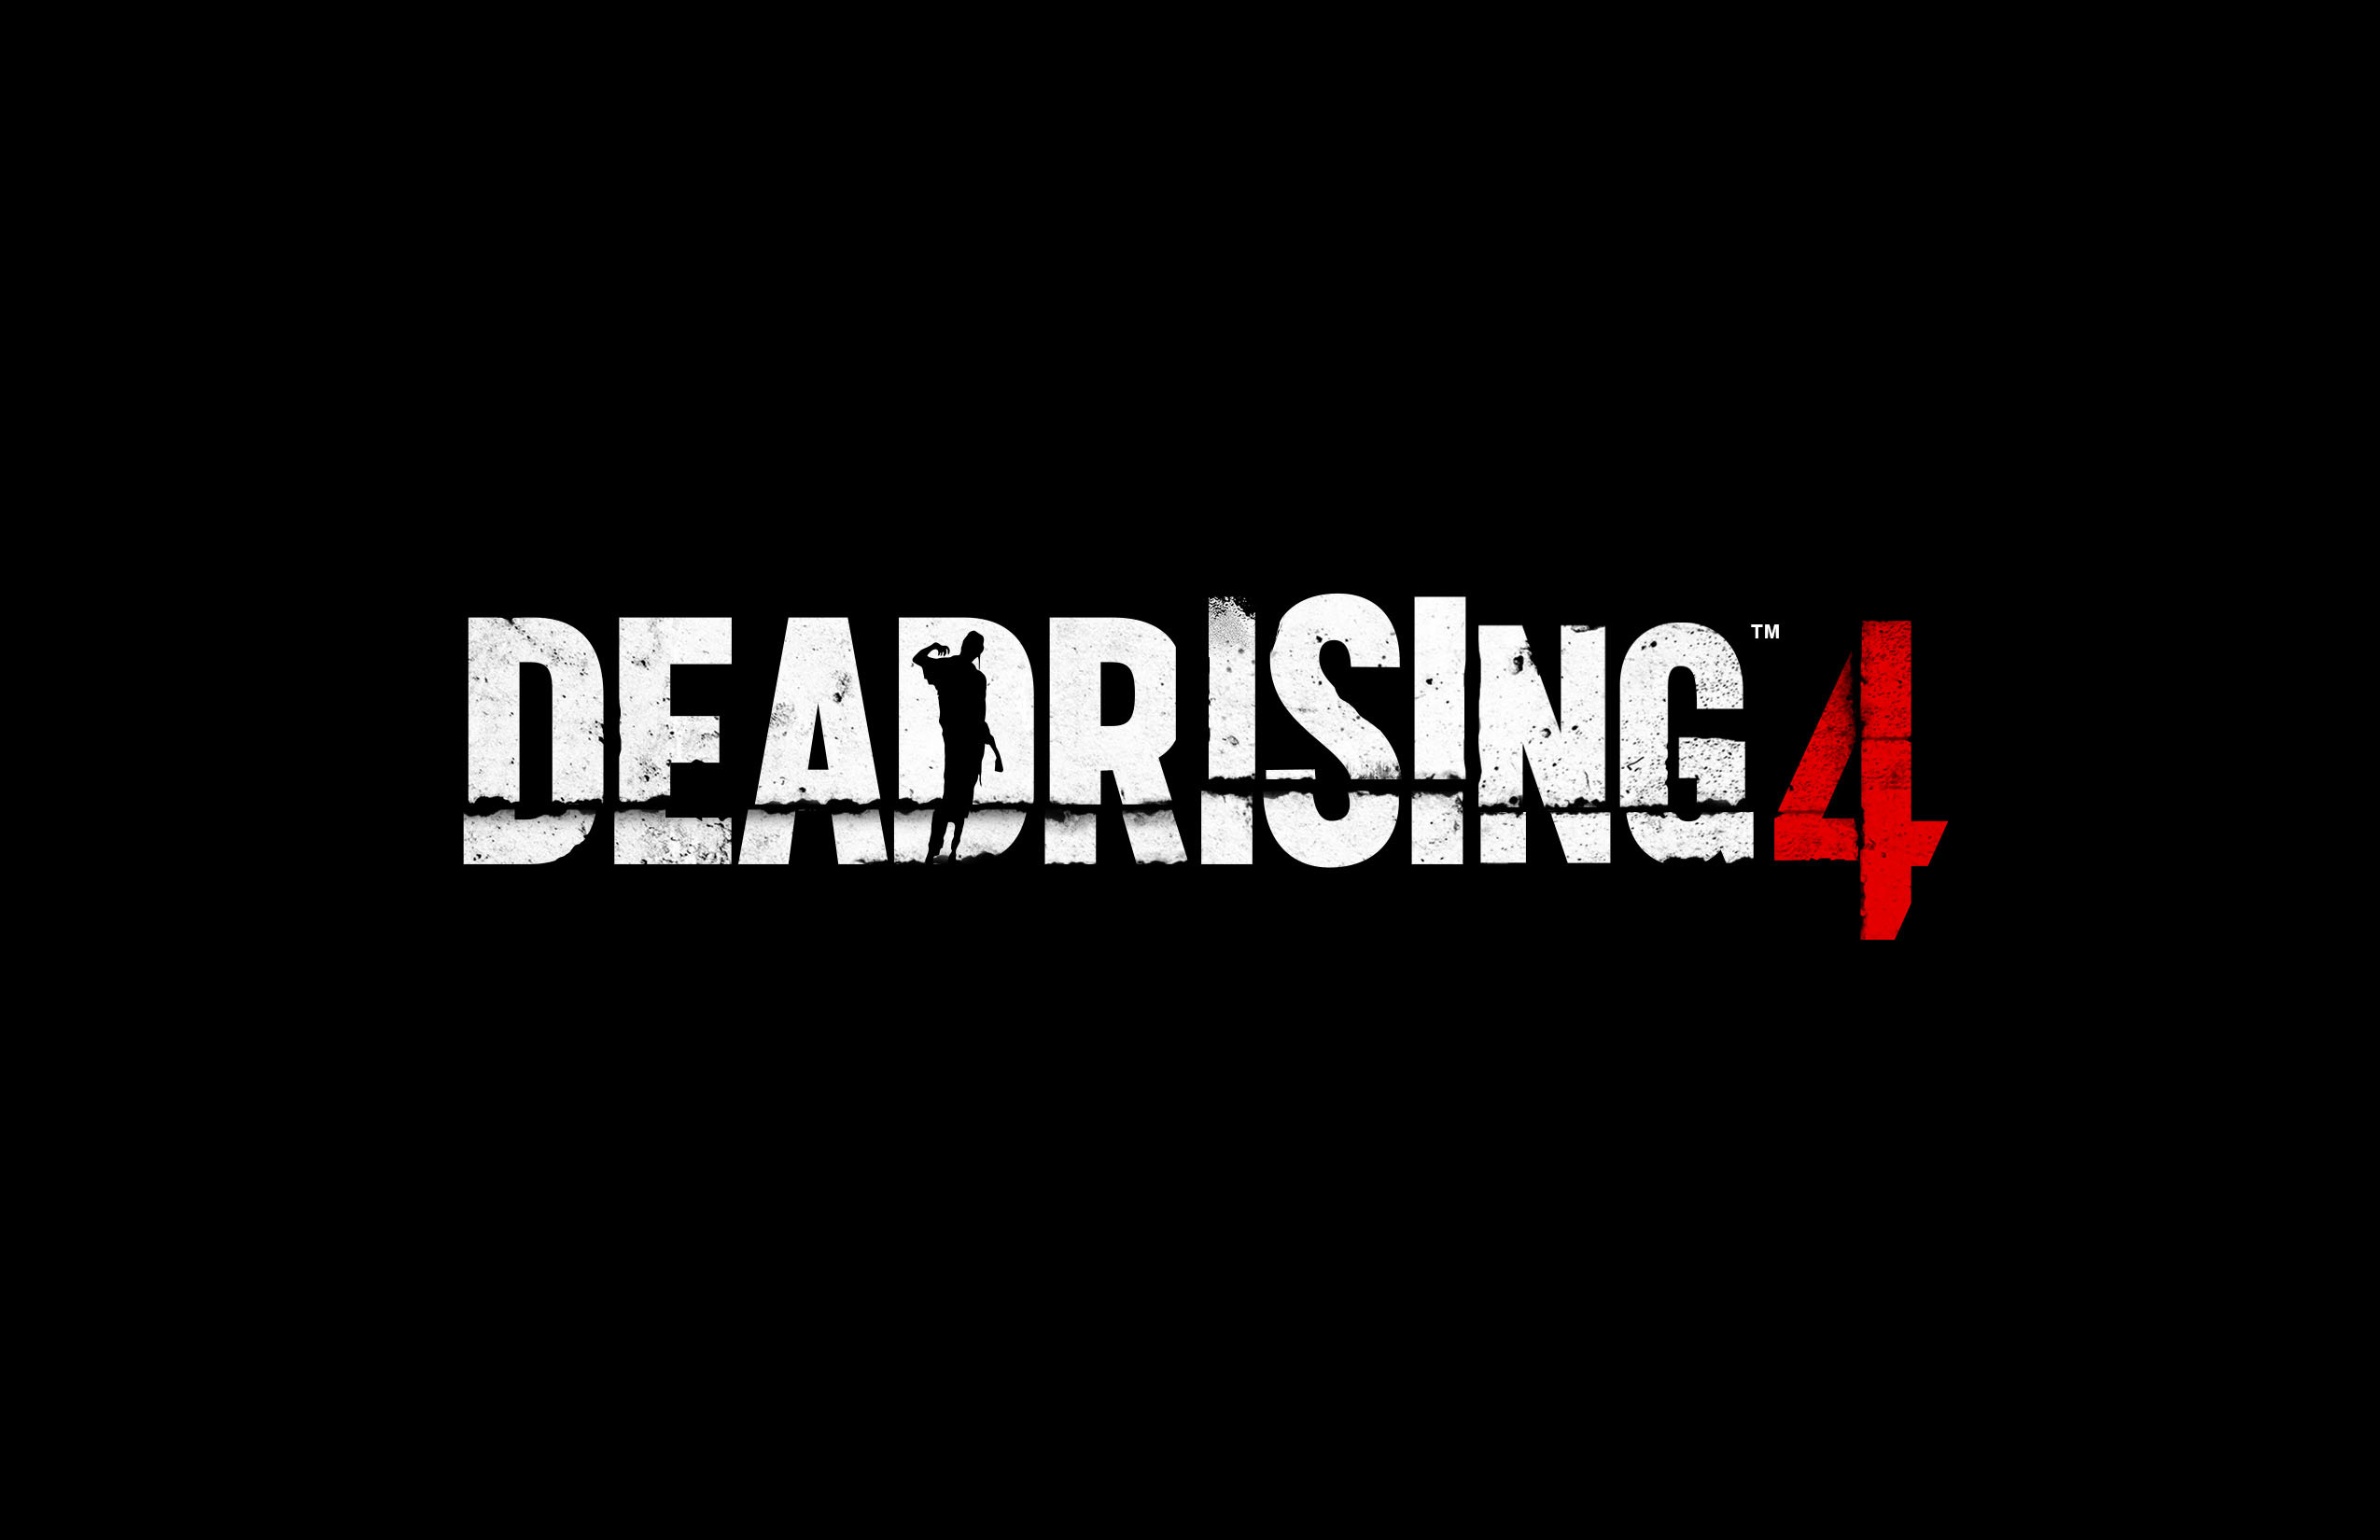 Dead Rising 4 Wallpaper: Dead Rising 4 Wallpapers Images Photos Pictures Backgrounds